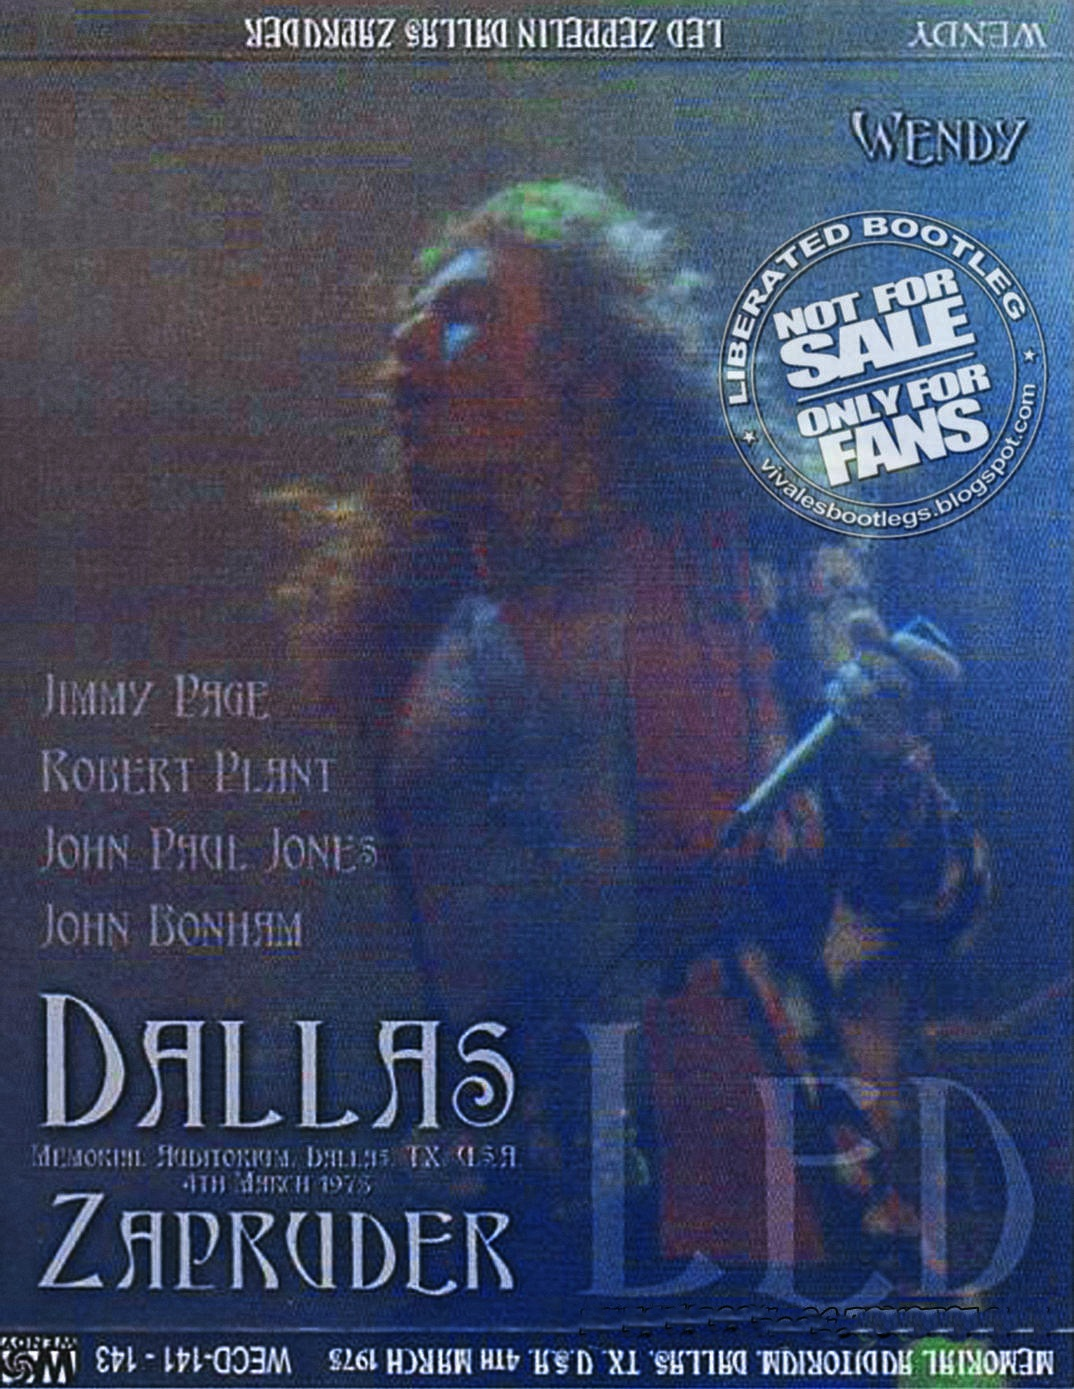 1975 - Led Zeppelin -  Zapruder - Dallas